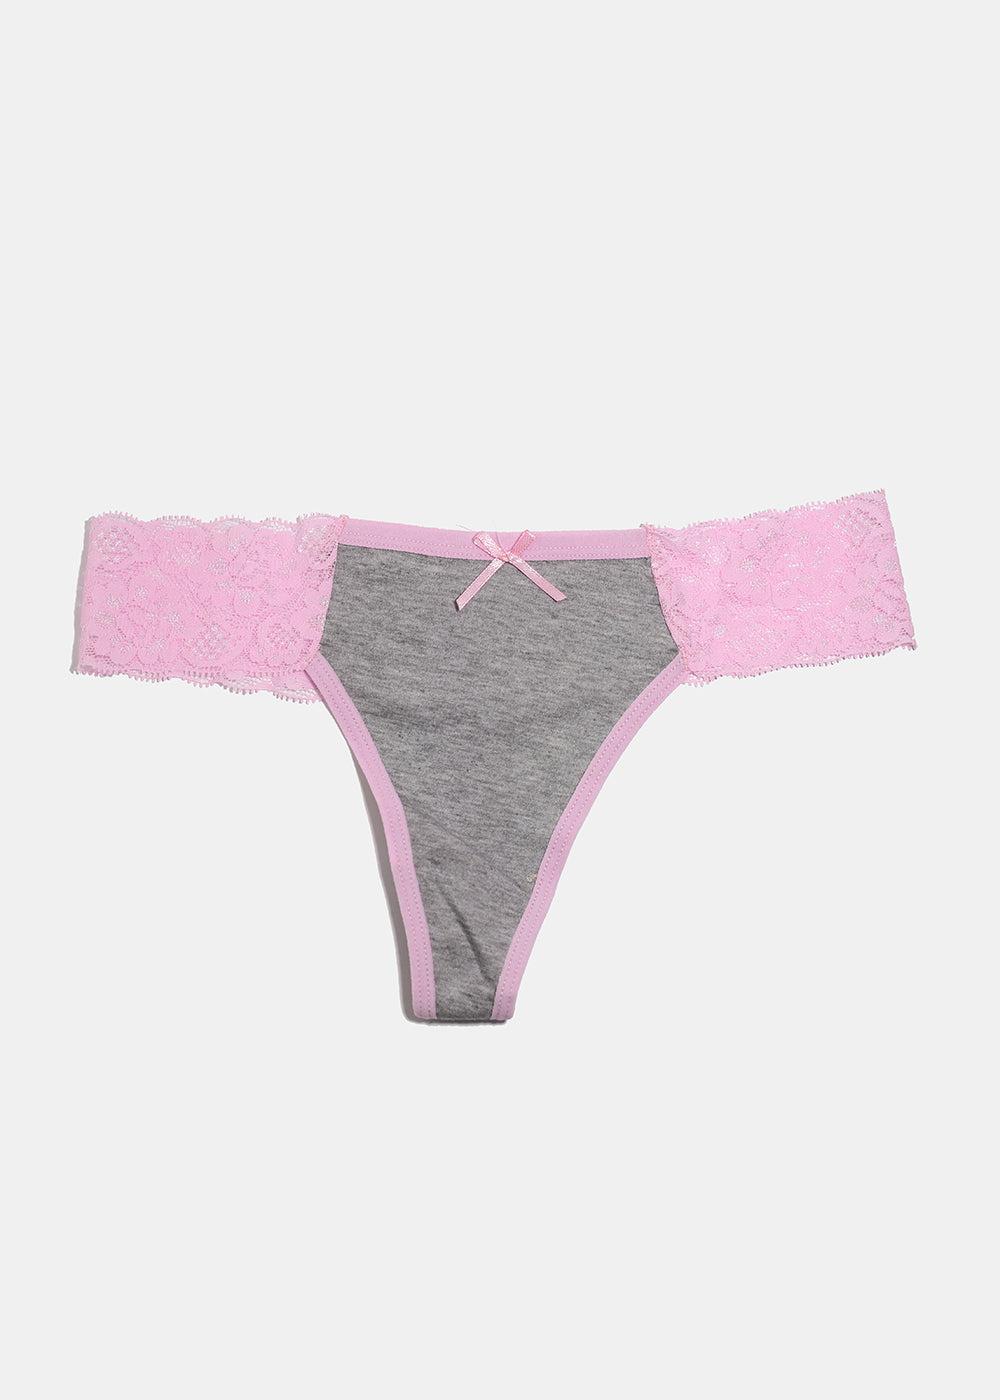 Heathered Lacy Thong Panty- Light Pink